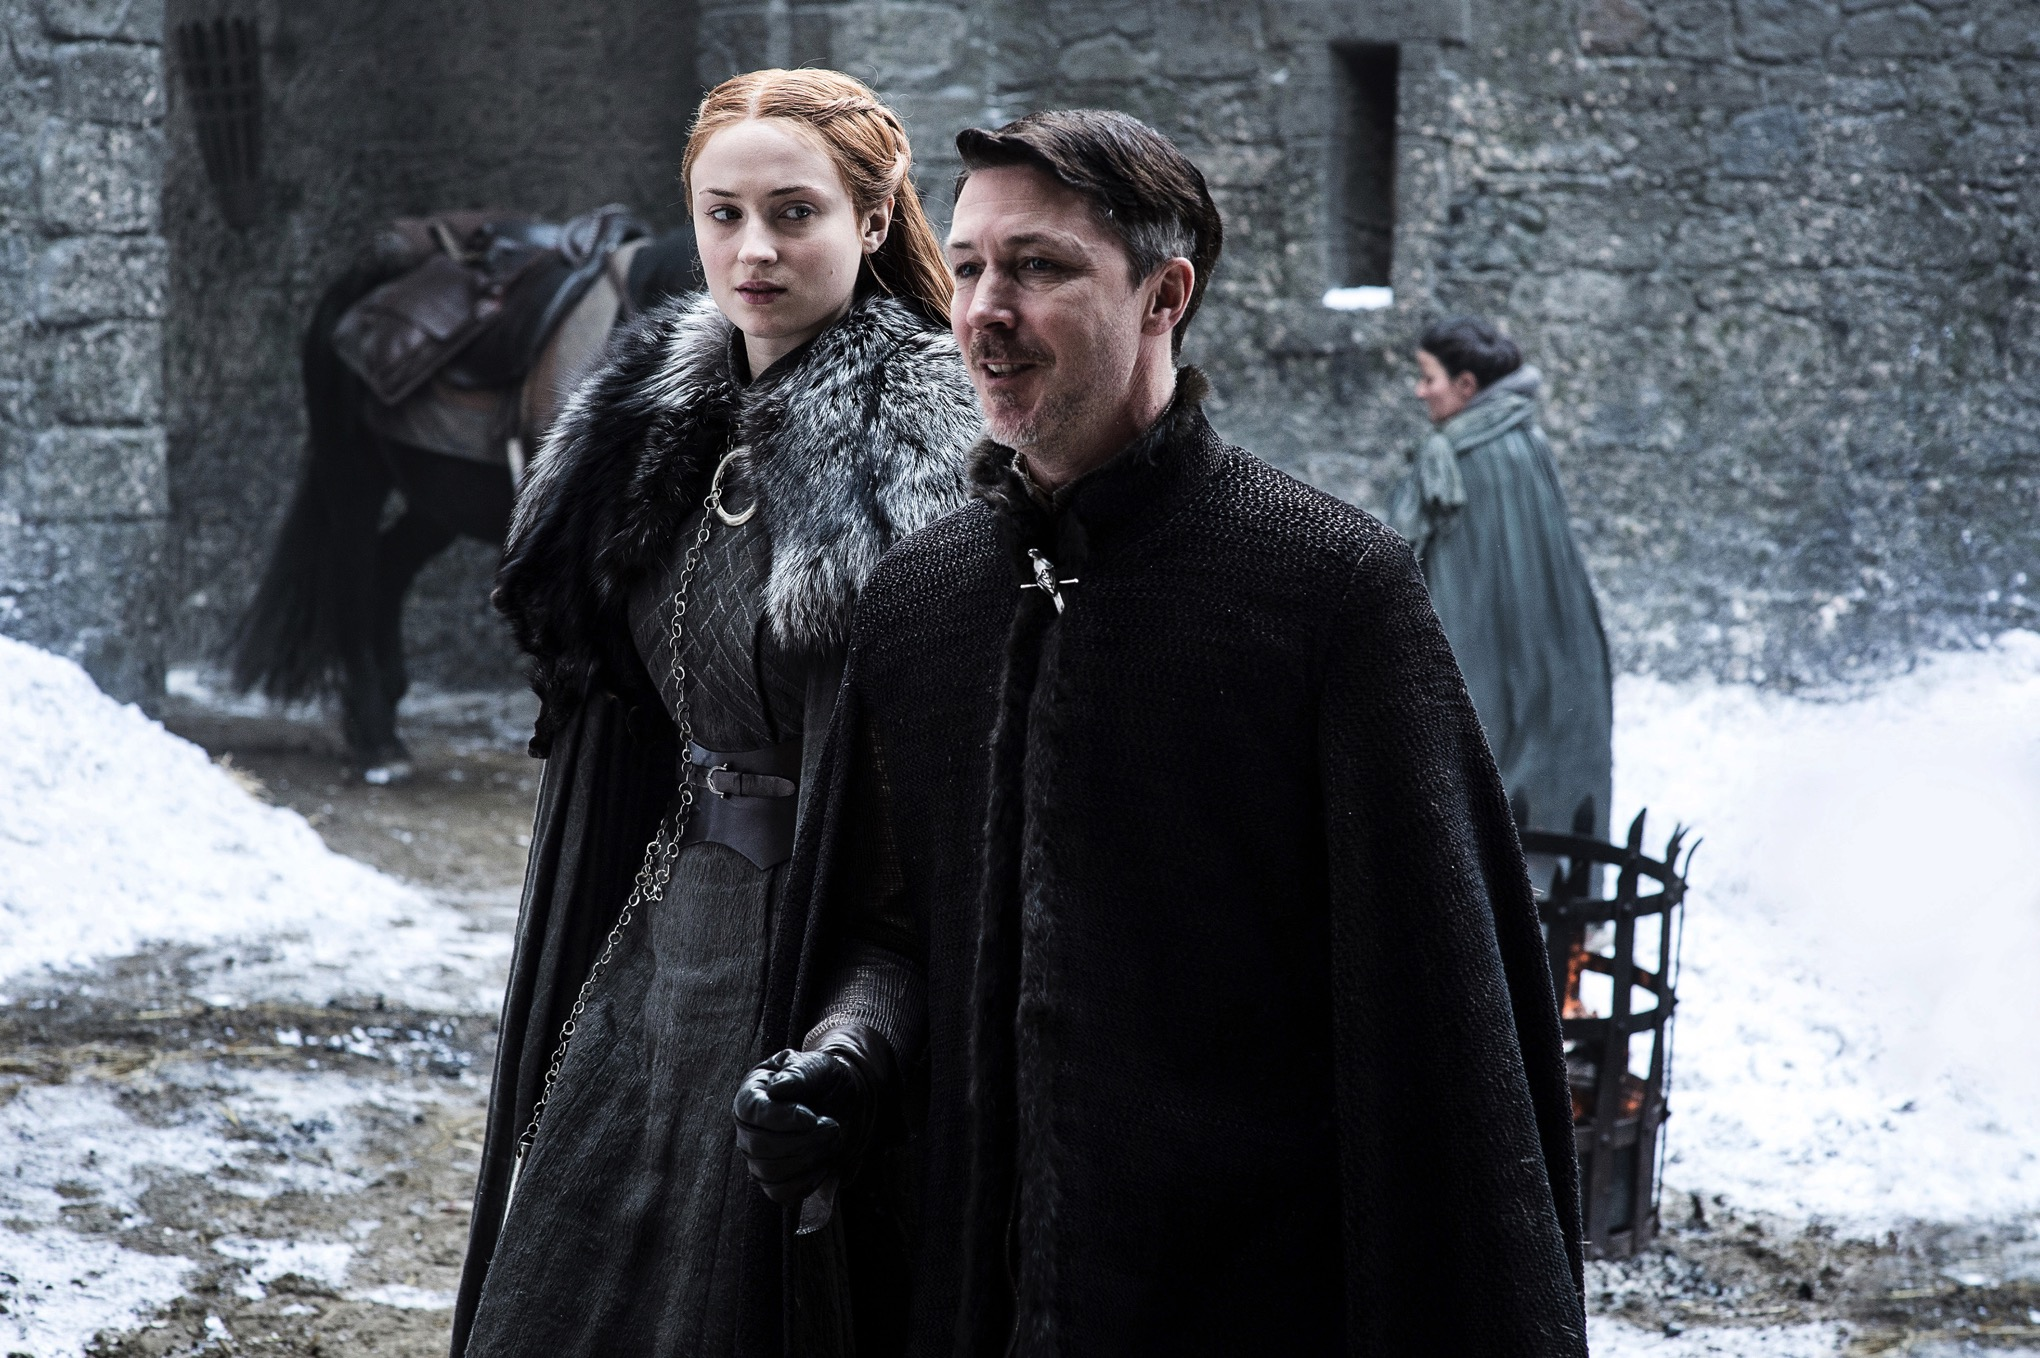 Lore of Thrones: What exactly was Littlefinger's long-term plan